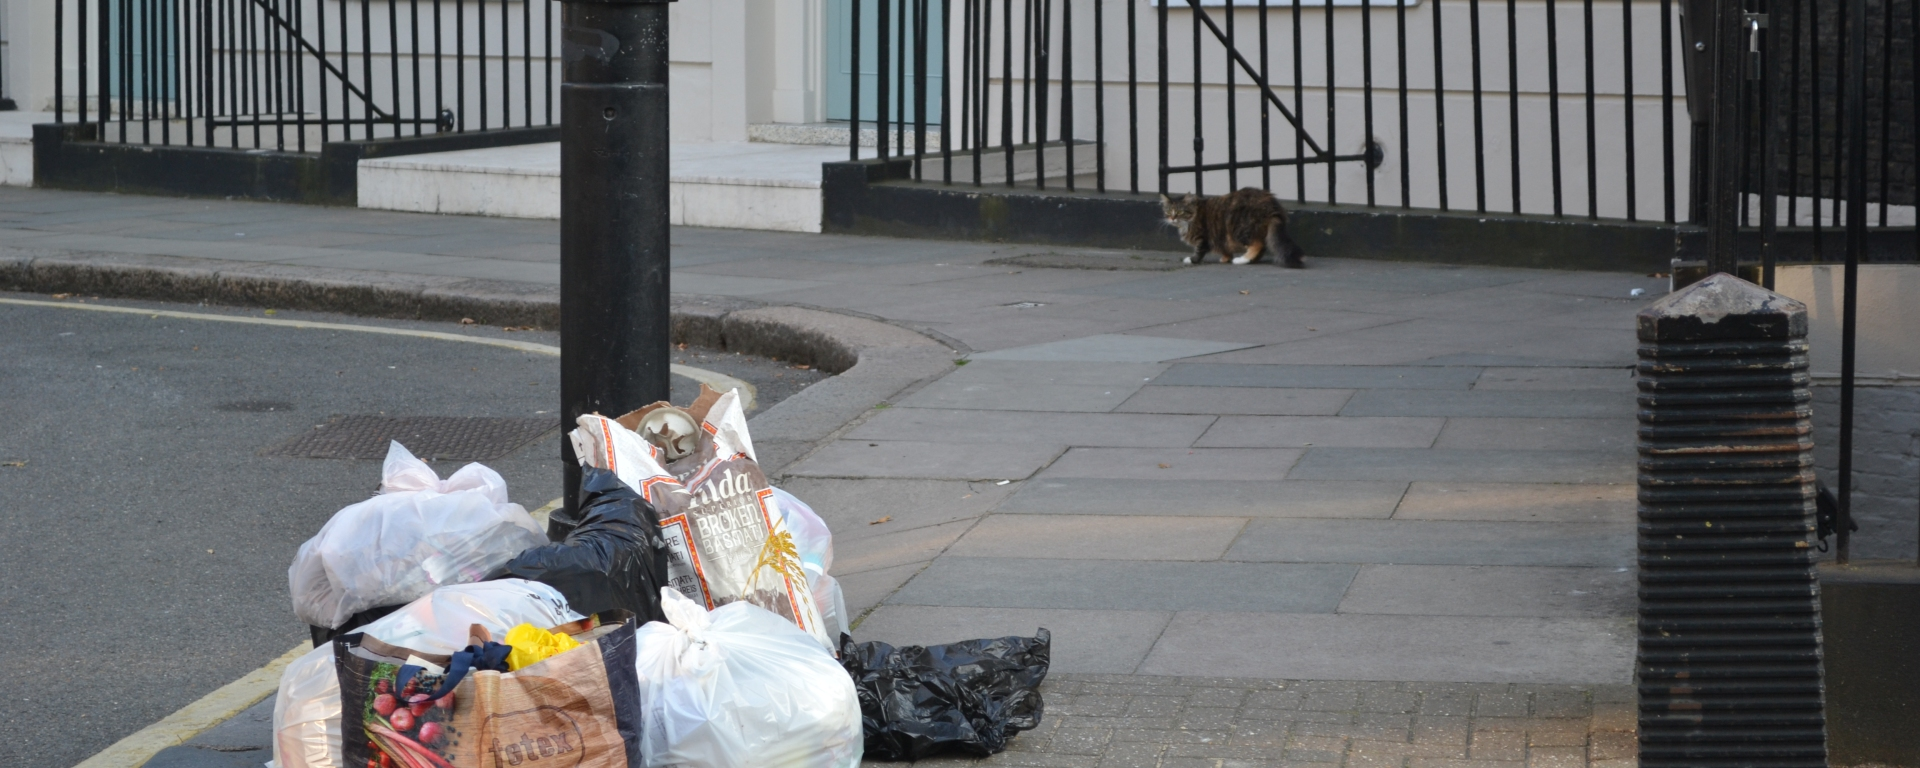 Pile of bin bags with a cat in the background, Argyle Street, Bloomsbury, Camden